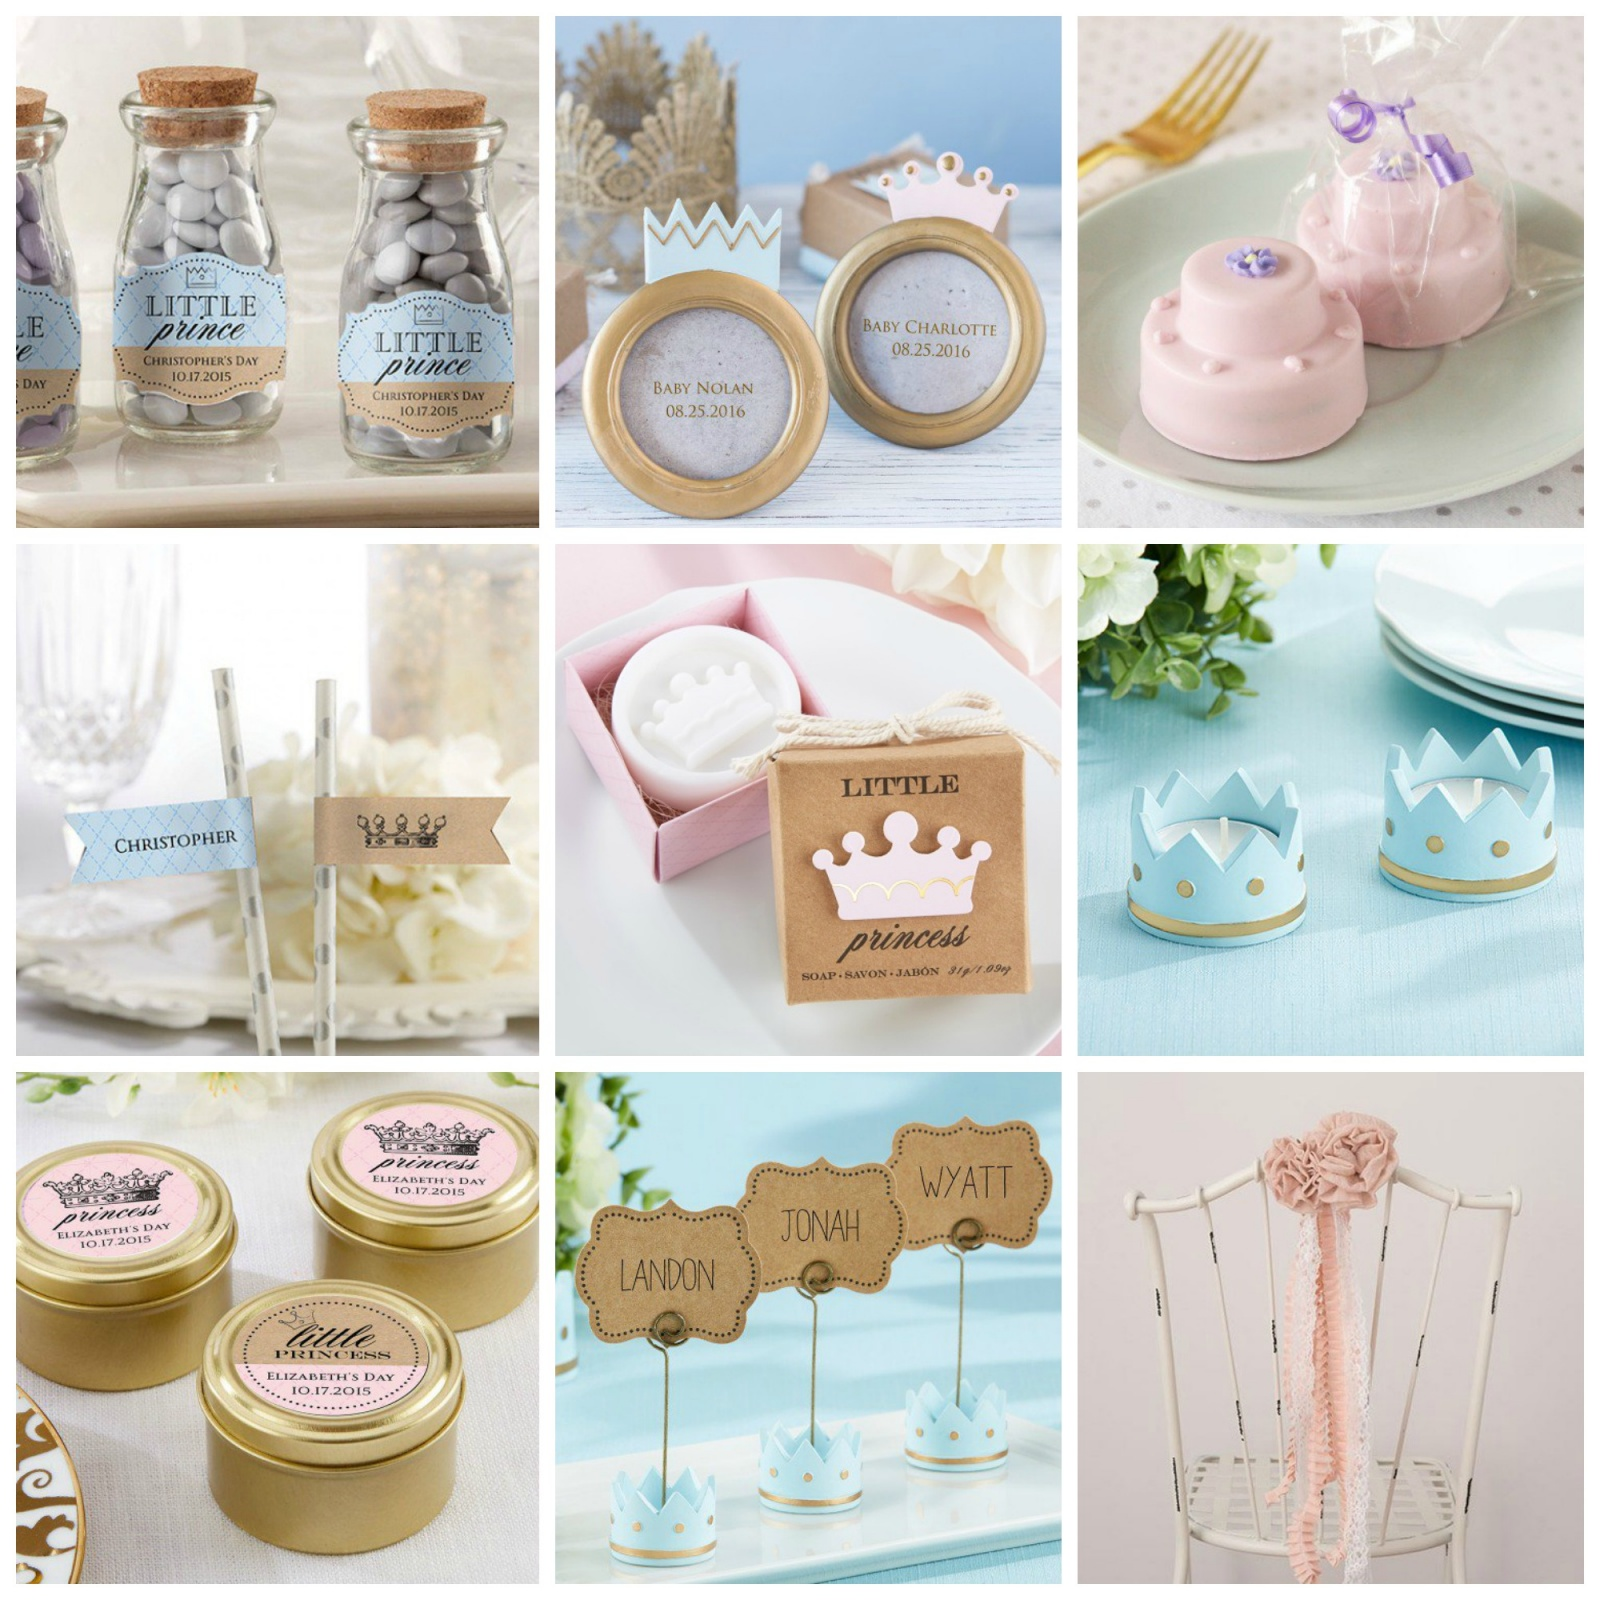 Start Planning The Perfect Baby Shower! Our Top 12 Themes To Get You ...